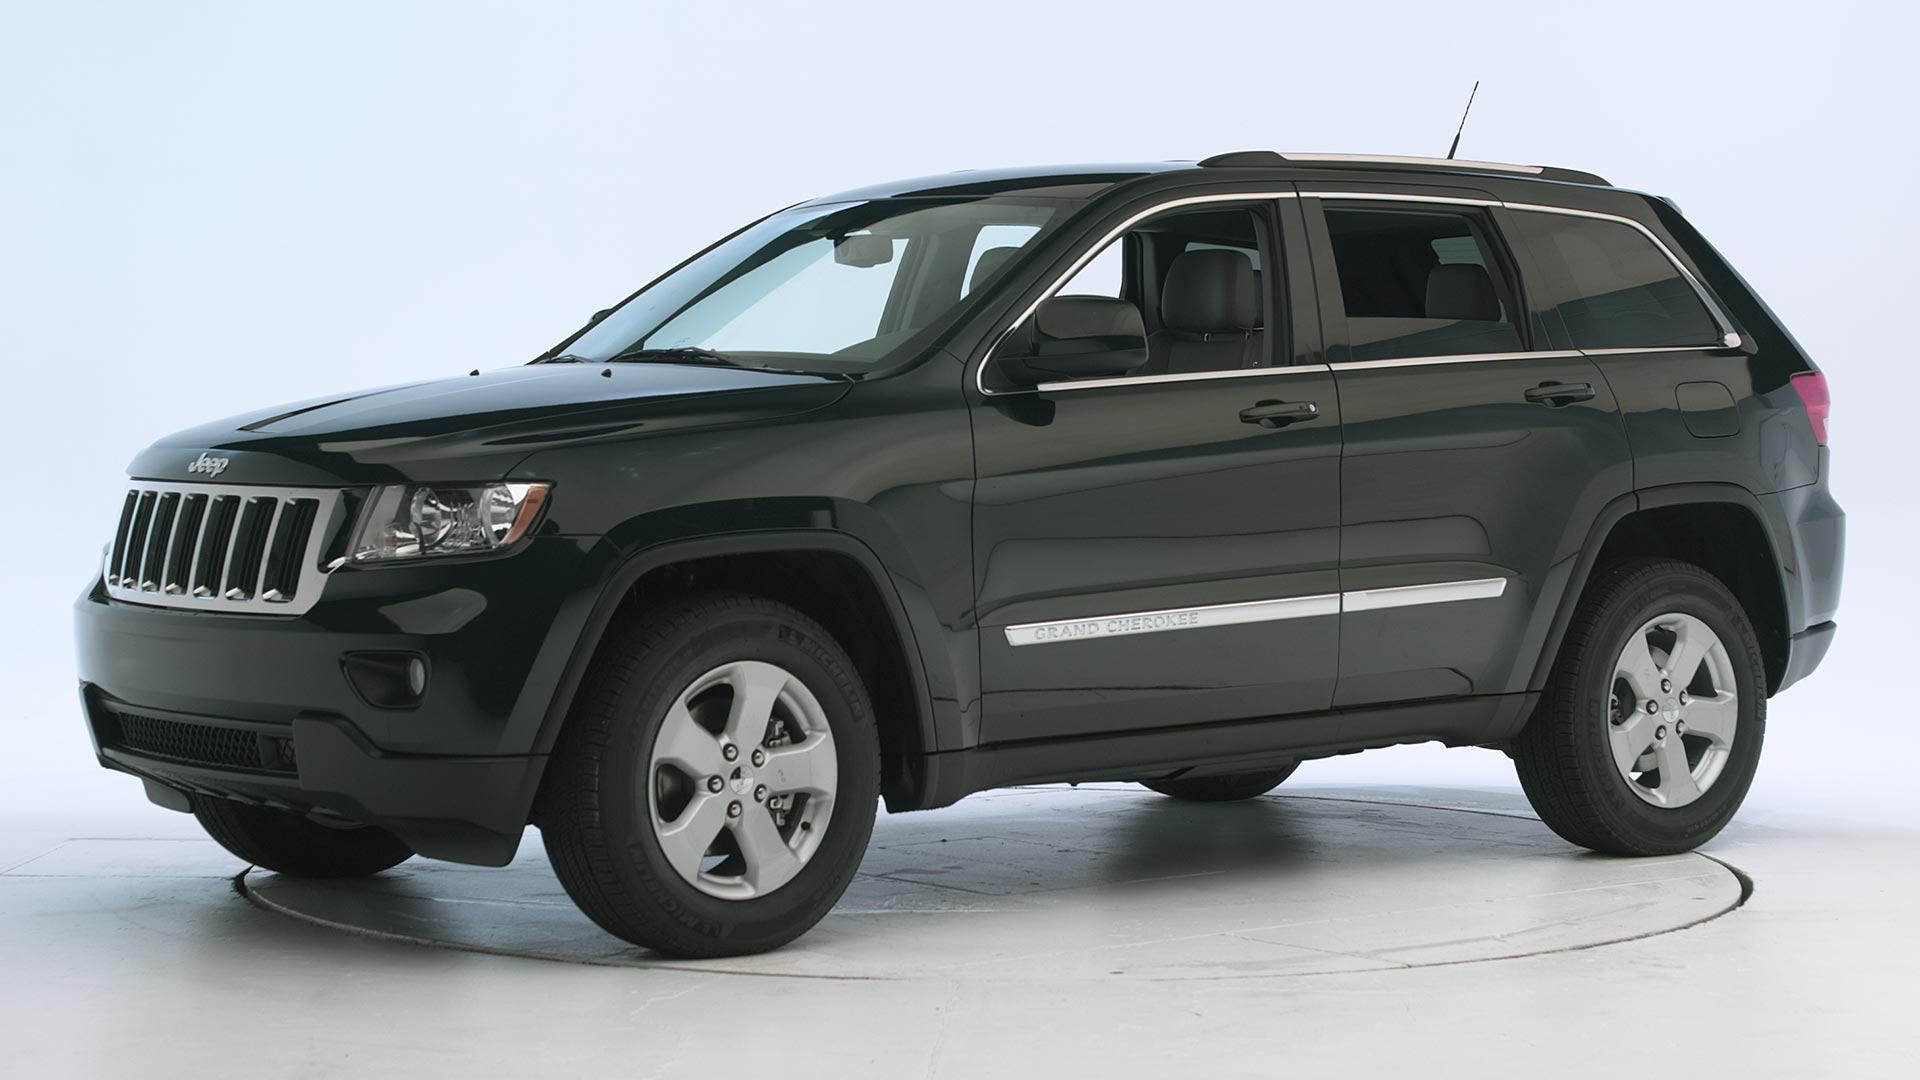 2012 Jeep Grand Cherokee 4-door SUV